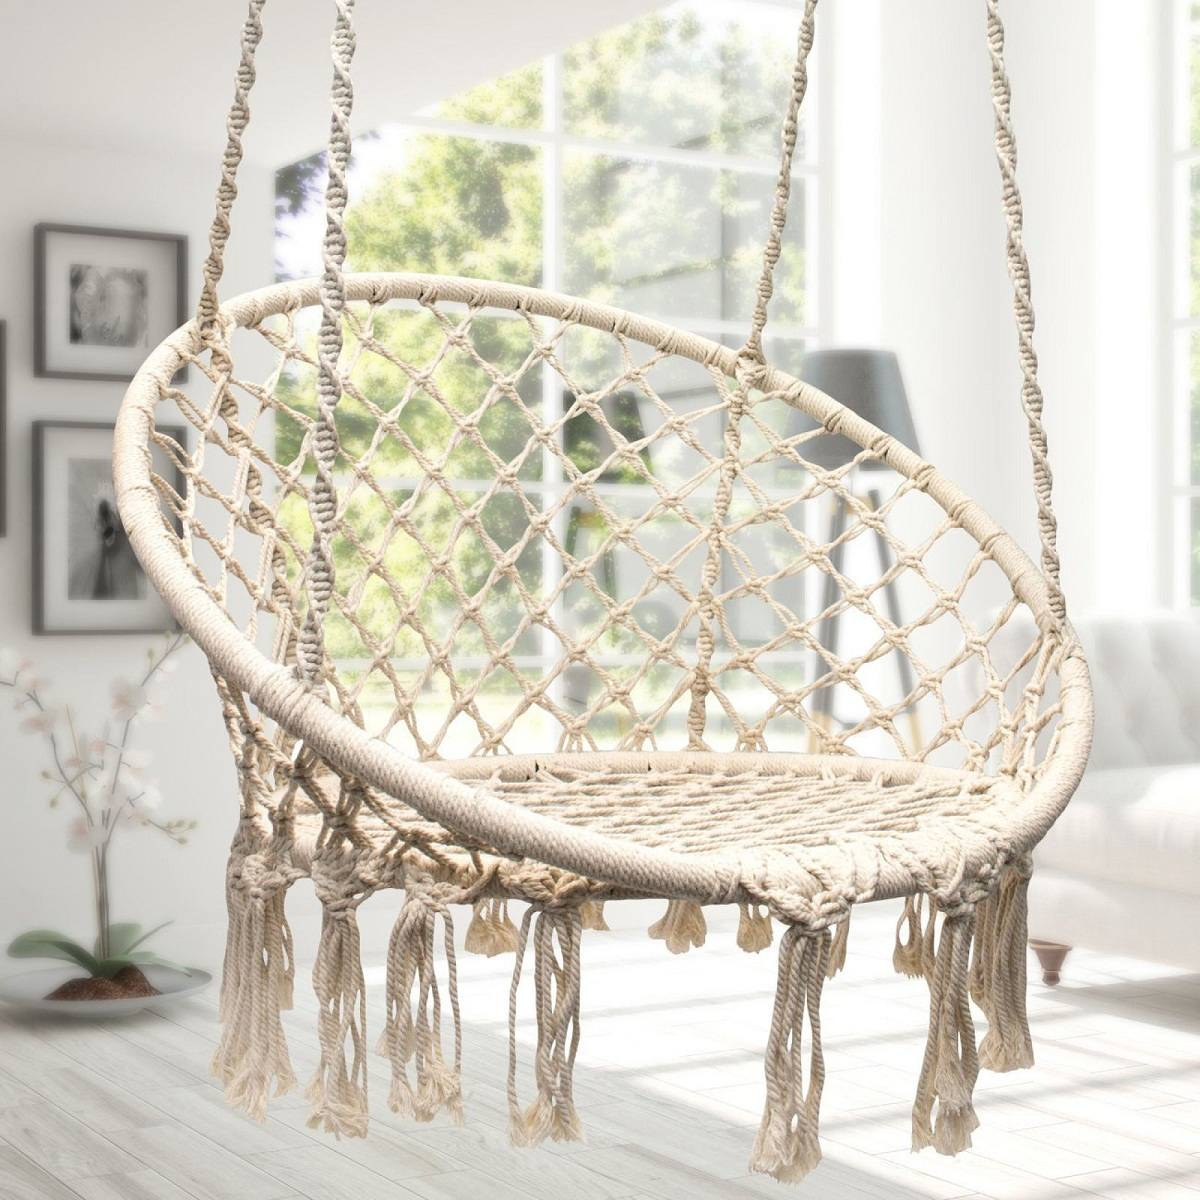 Nordic Style Hammock Furniture Swing Chair For Outdoor Indoor